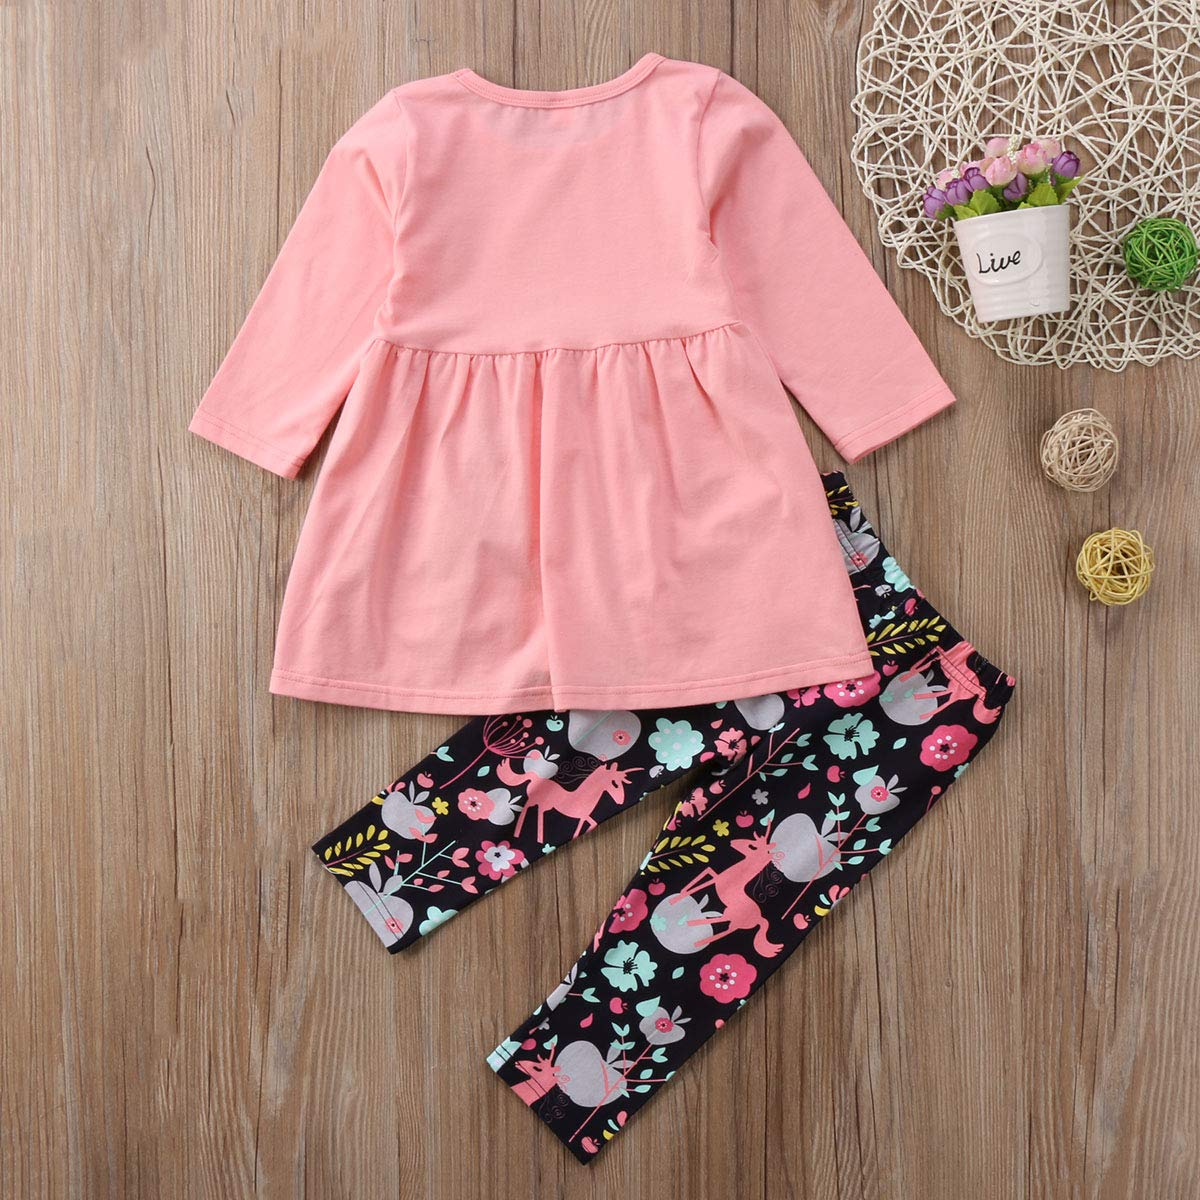 Toddler Little Girls Ruffle Flare Tunic Dress Top Striped Leggings Pants 2PC Fall Winter Outfit Set Clothes